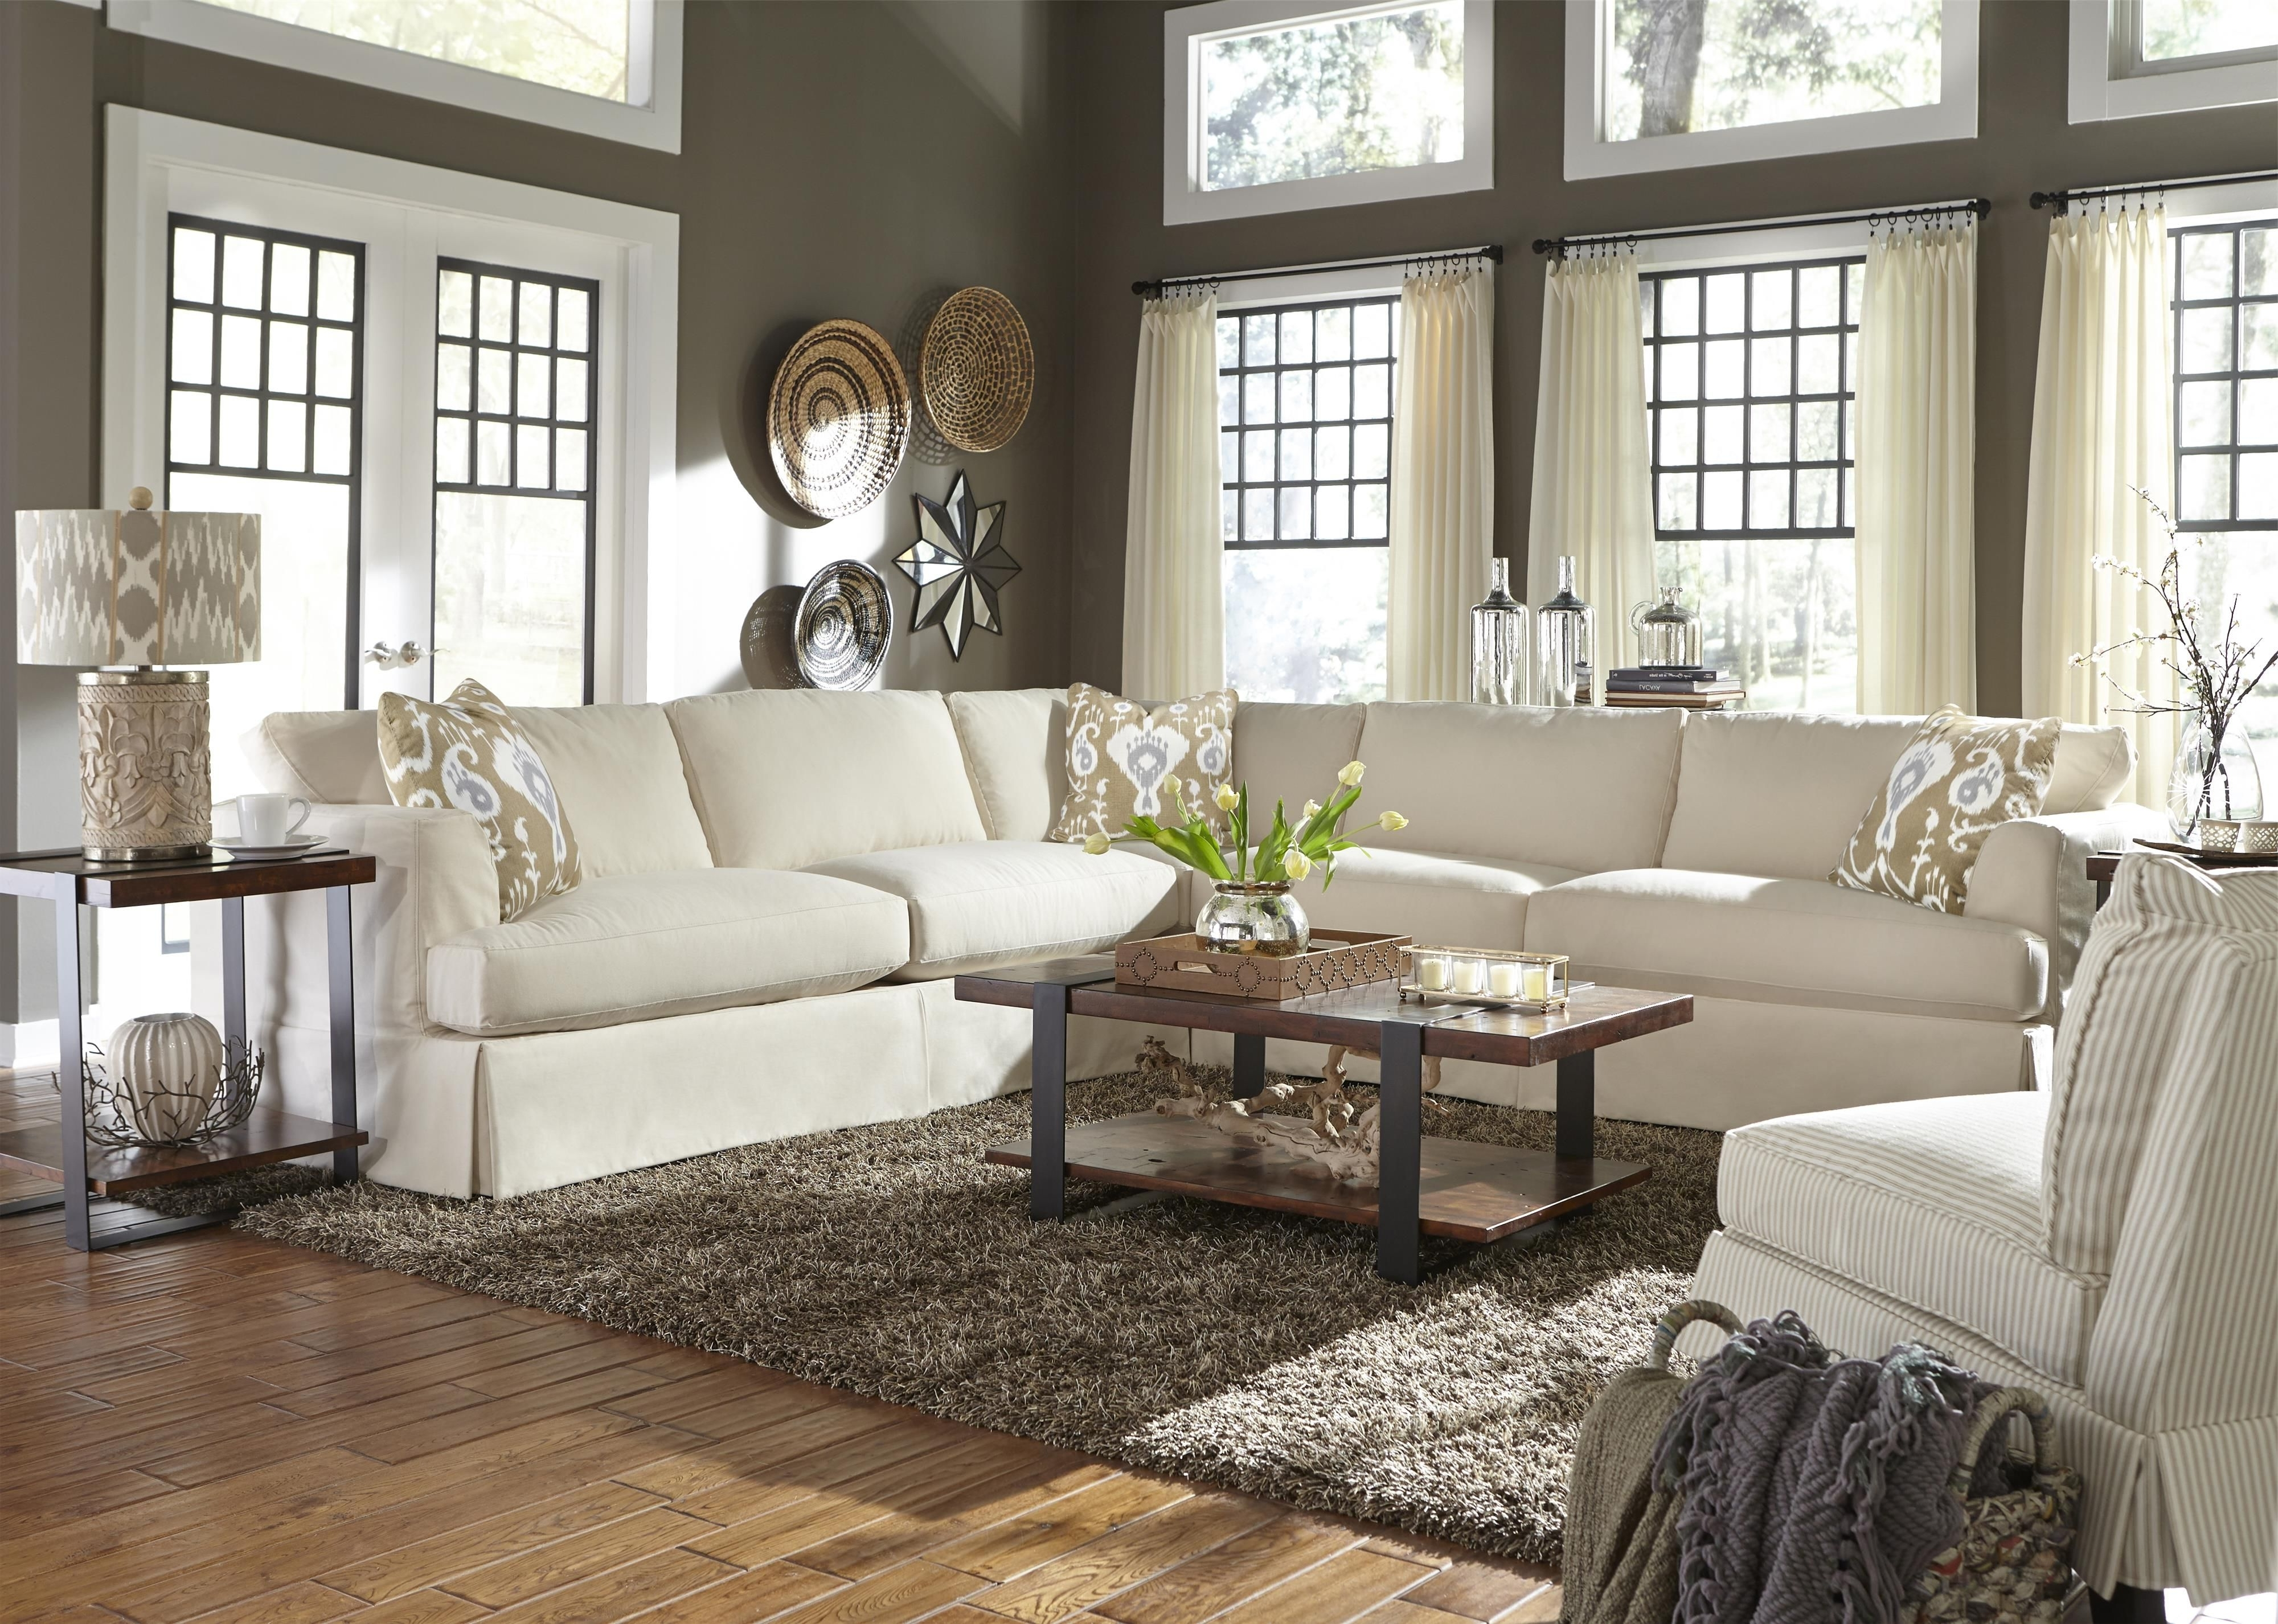 Recent Sectional Sofas At Sam's Club Within Pindonna Pixley On For The Home (View 13 of 20)